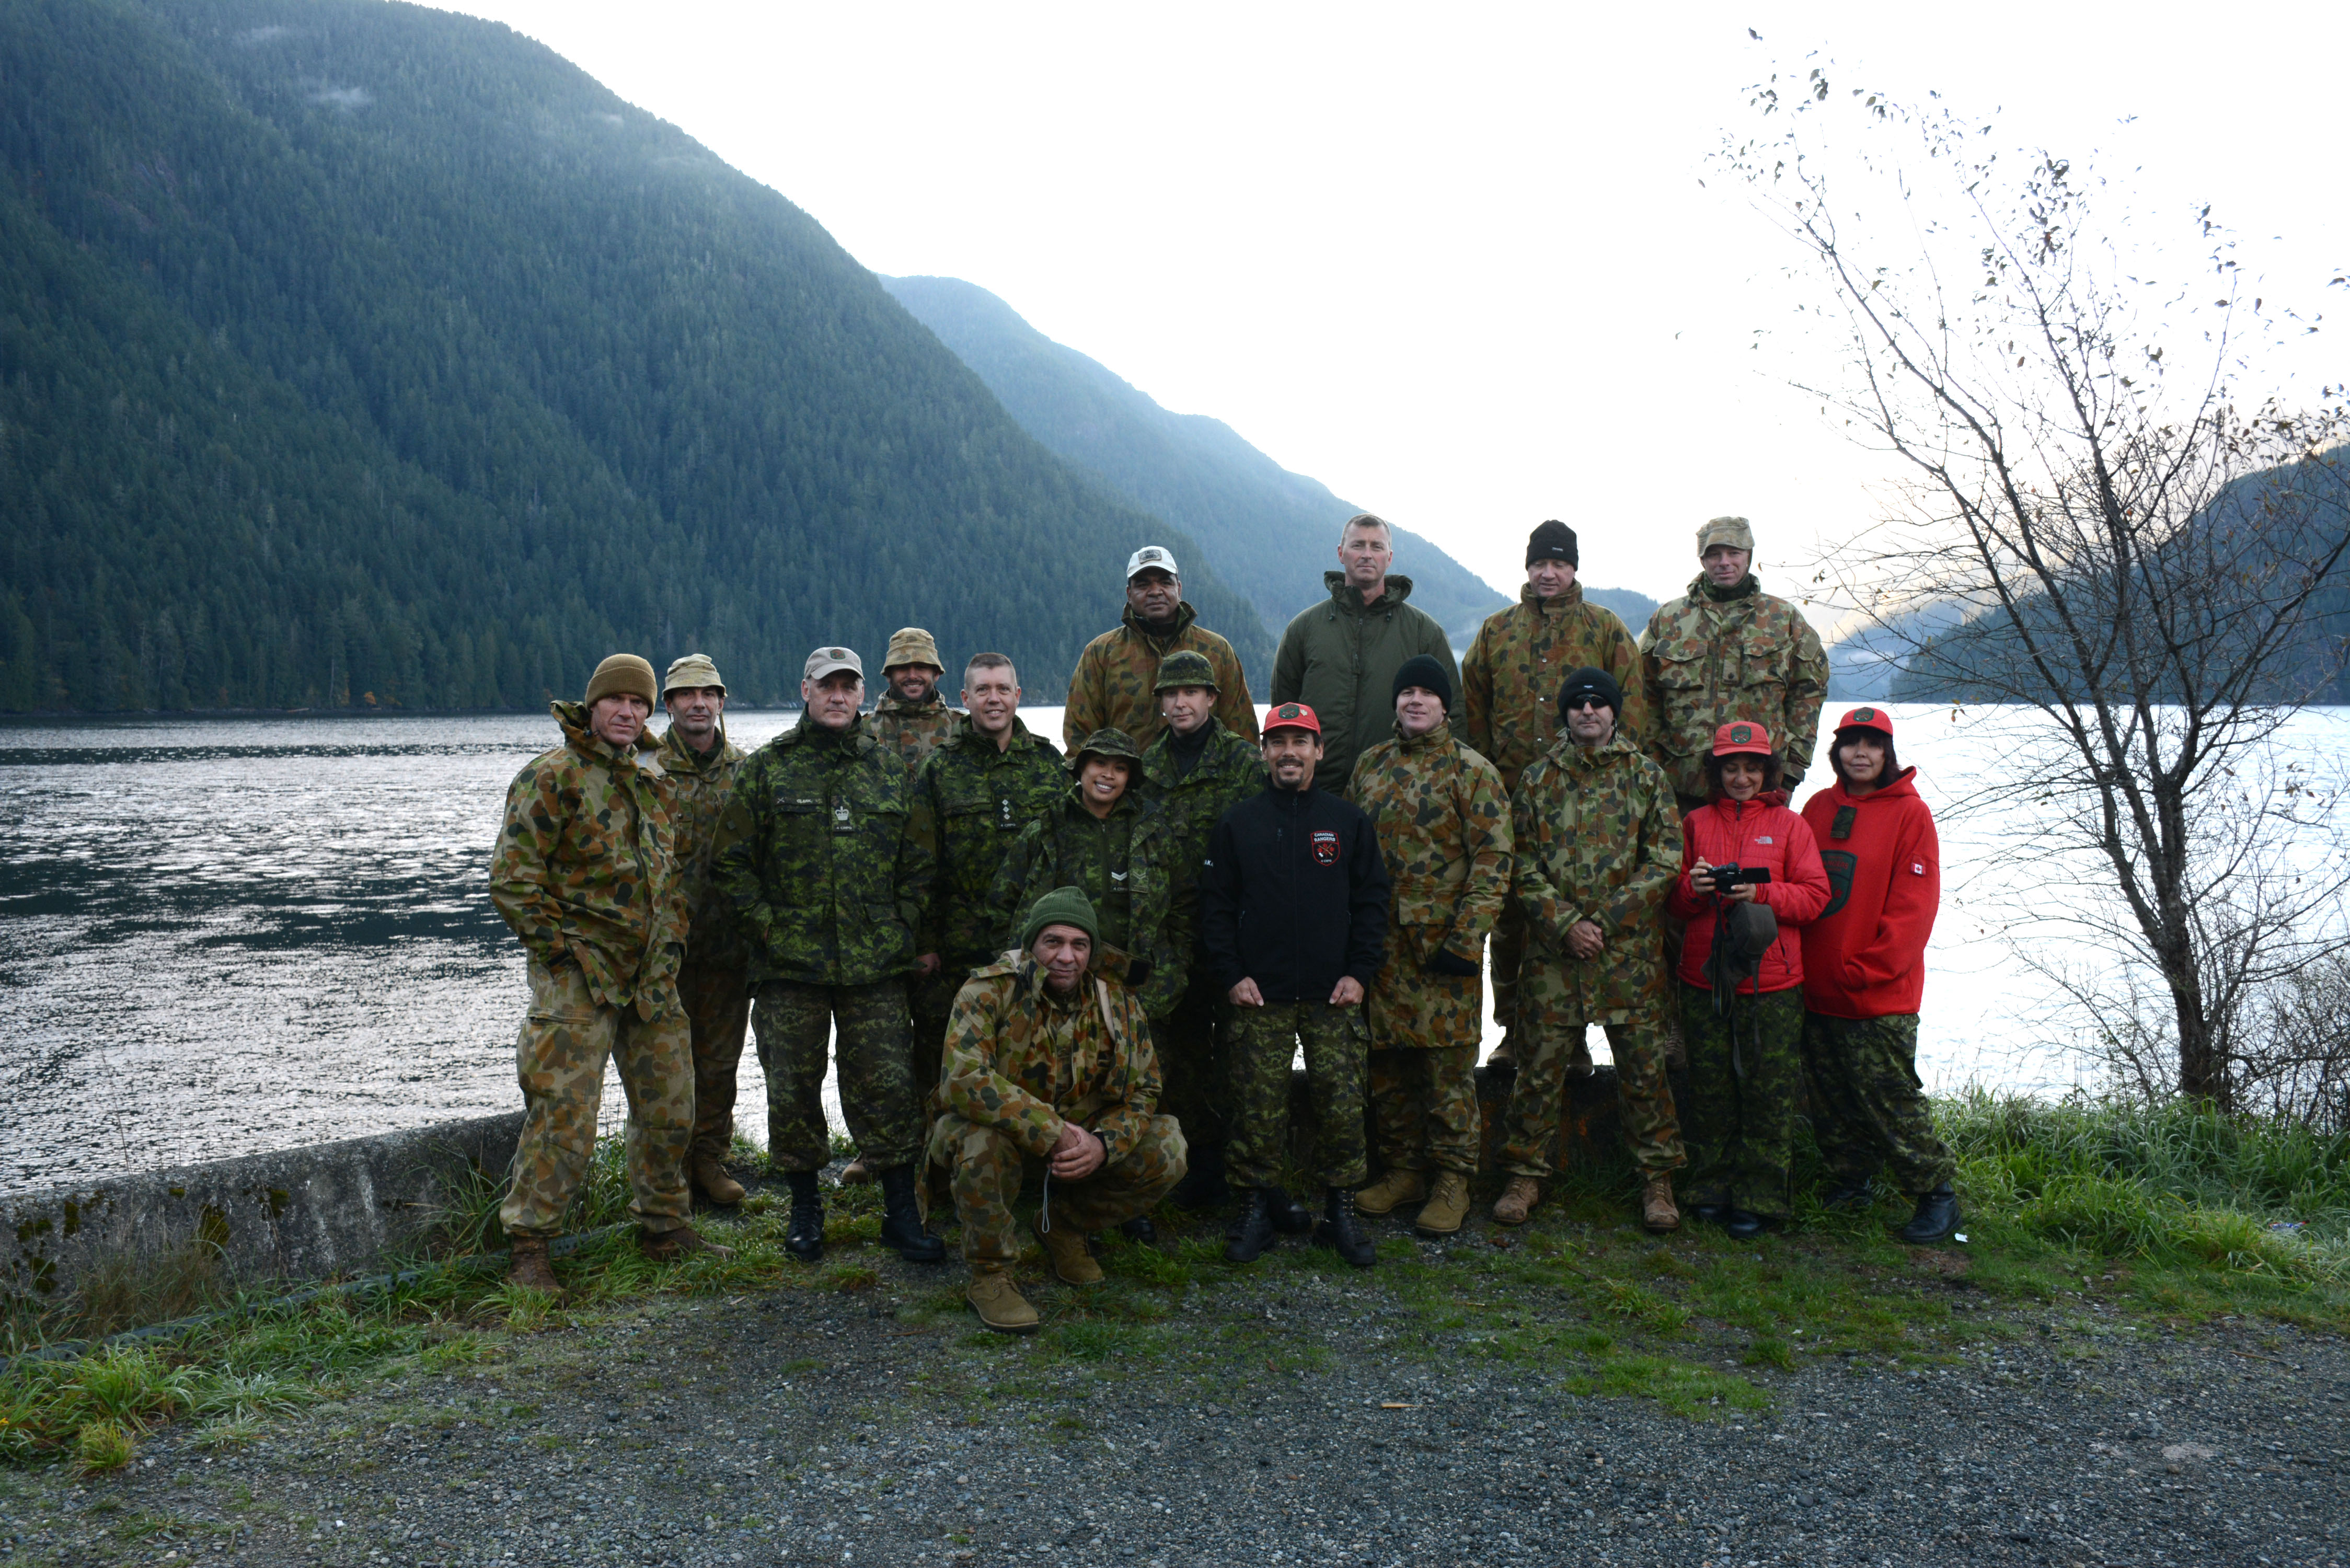 A group of 17 soldiers dressed in camouflage from Australia and Canada pose for a photo in front of a lake and montains.